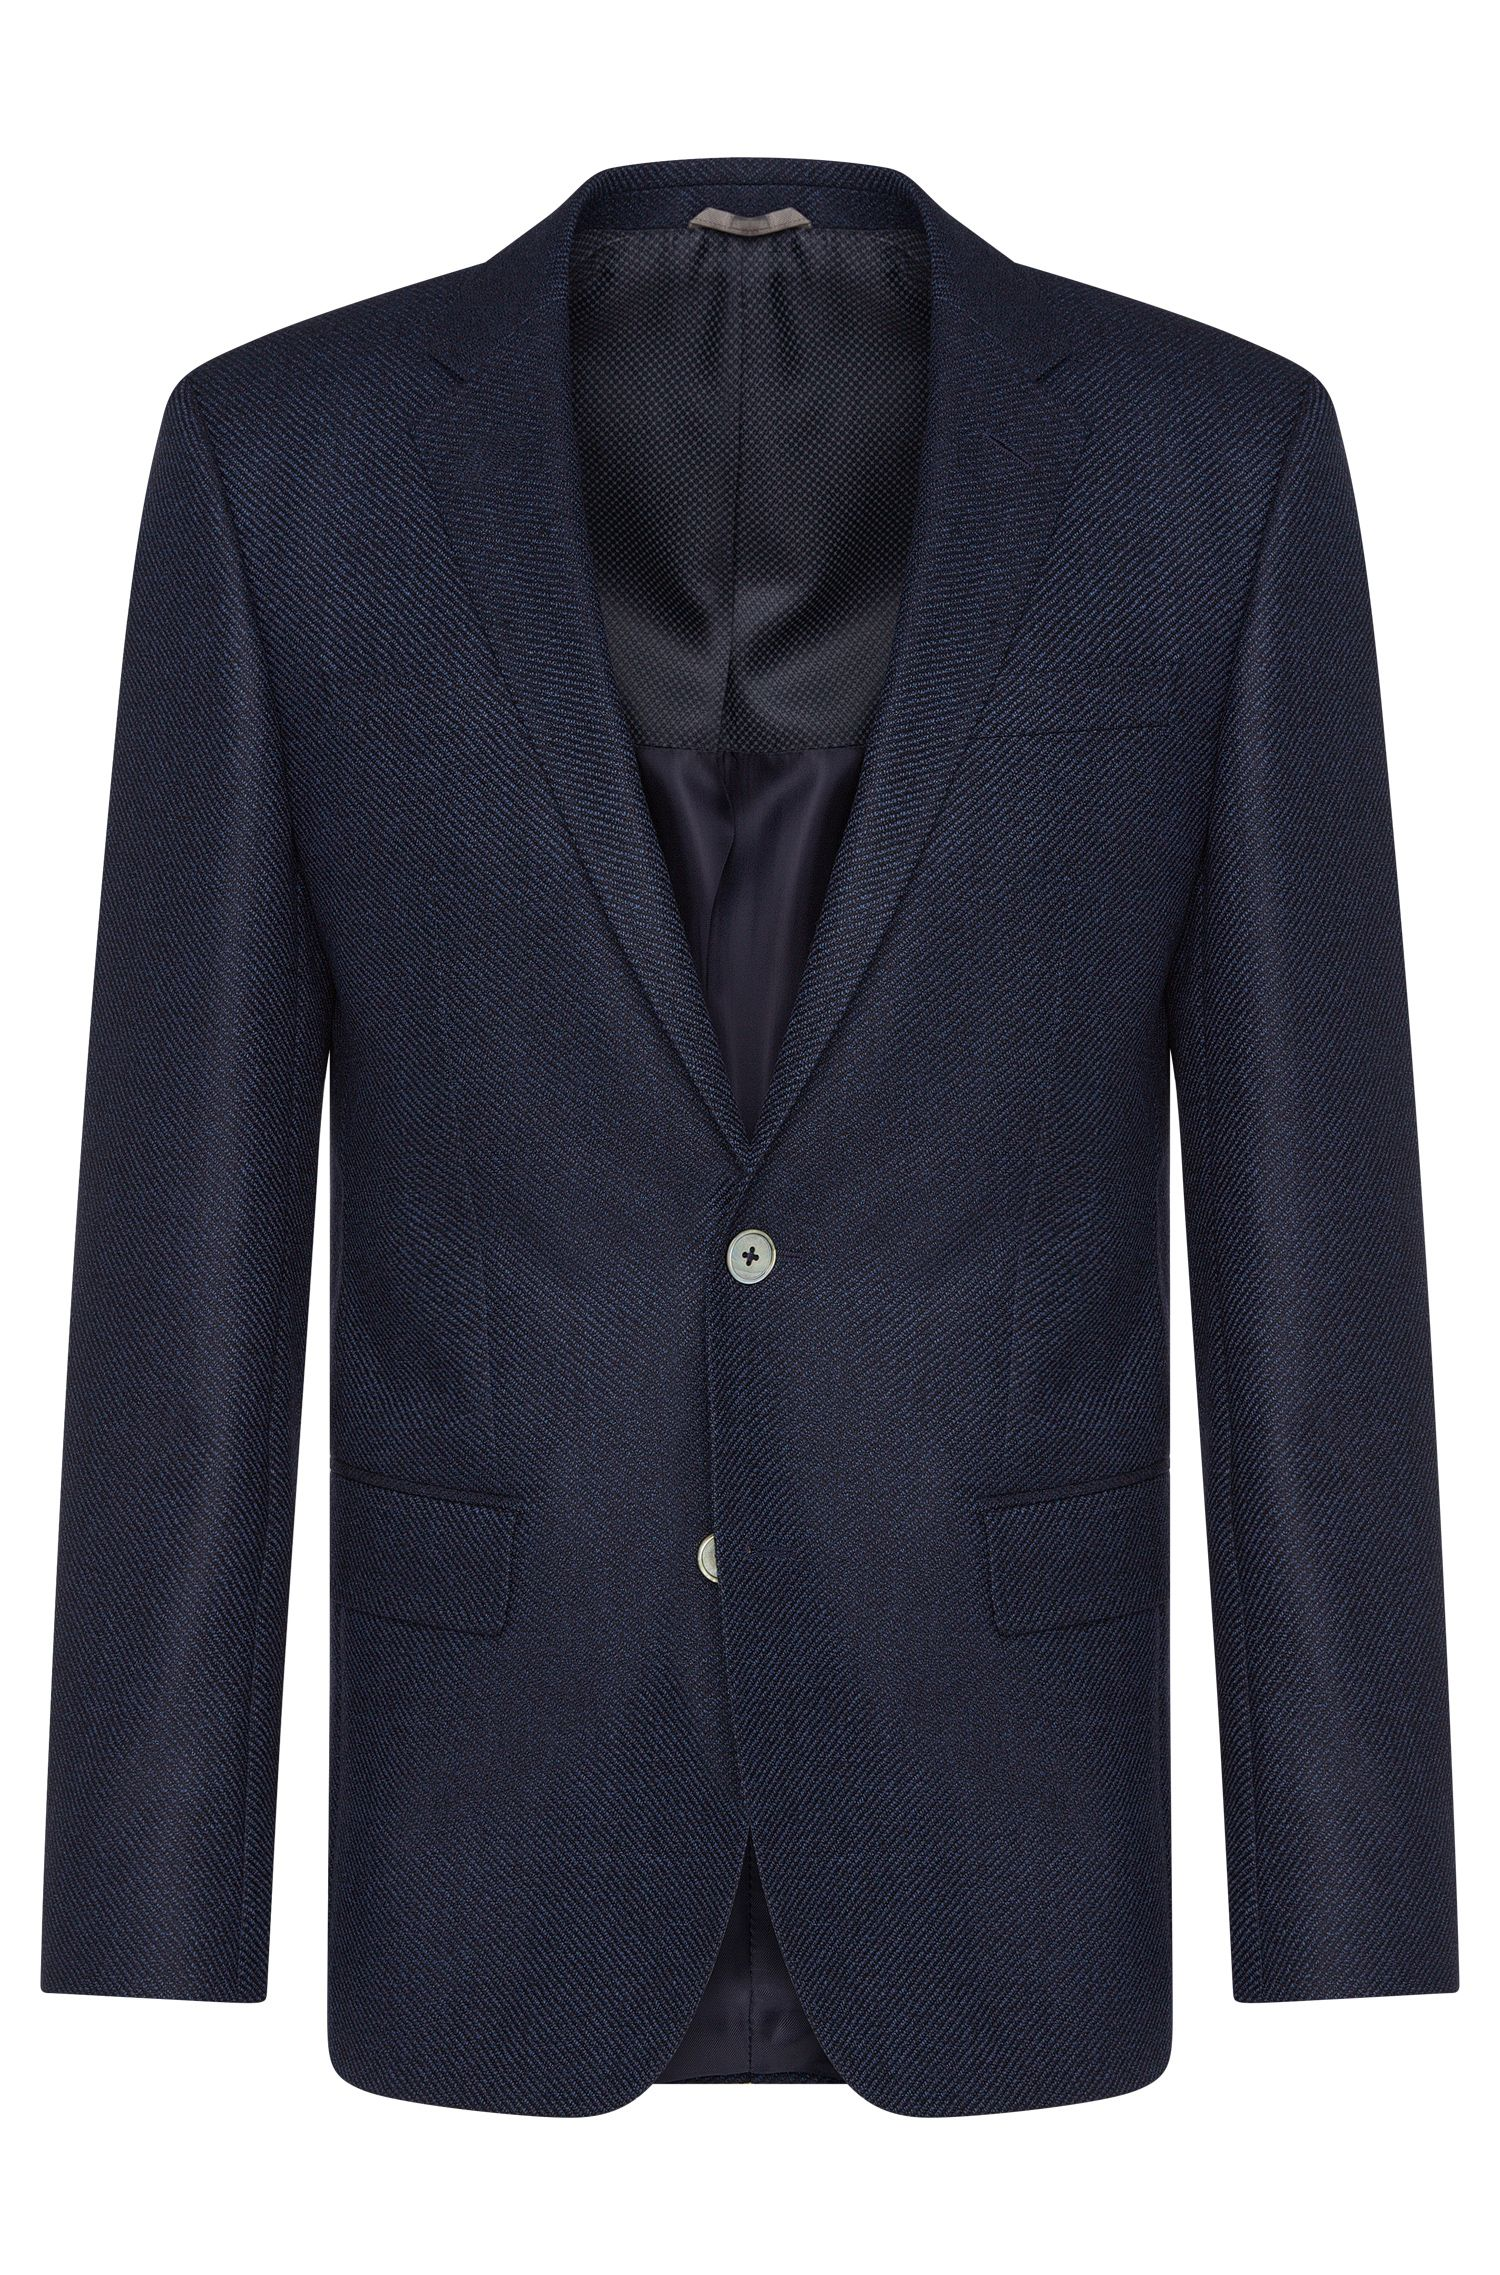 'Hutsons' | Slim Fit, Super 100 Virgin Wool Sport Coat